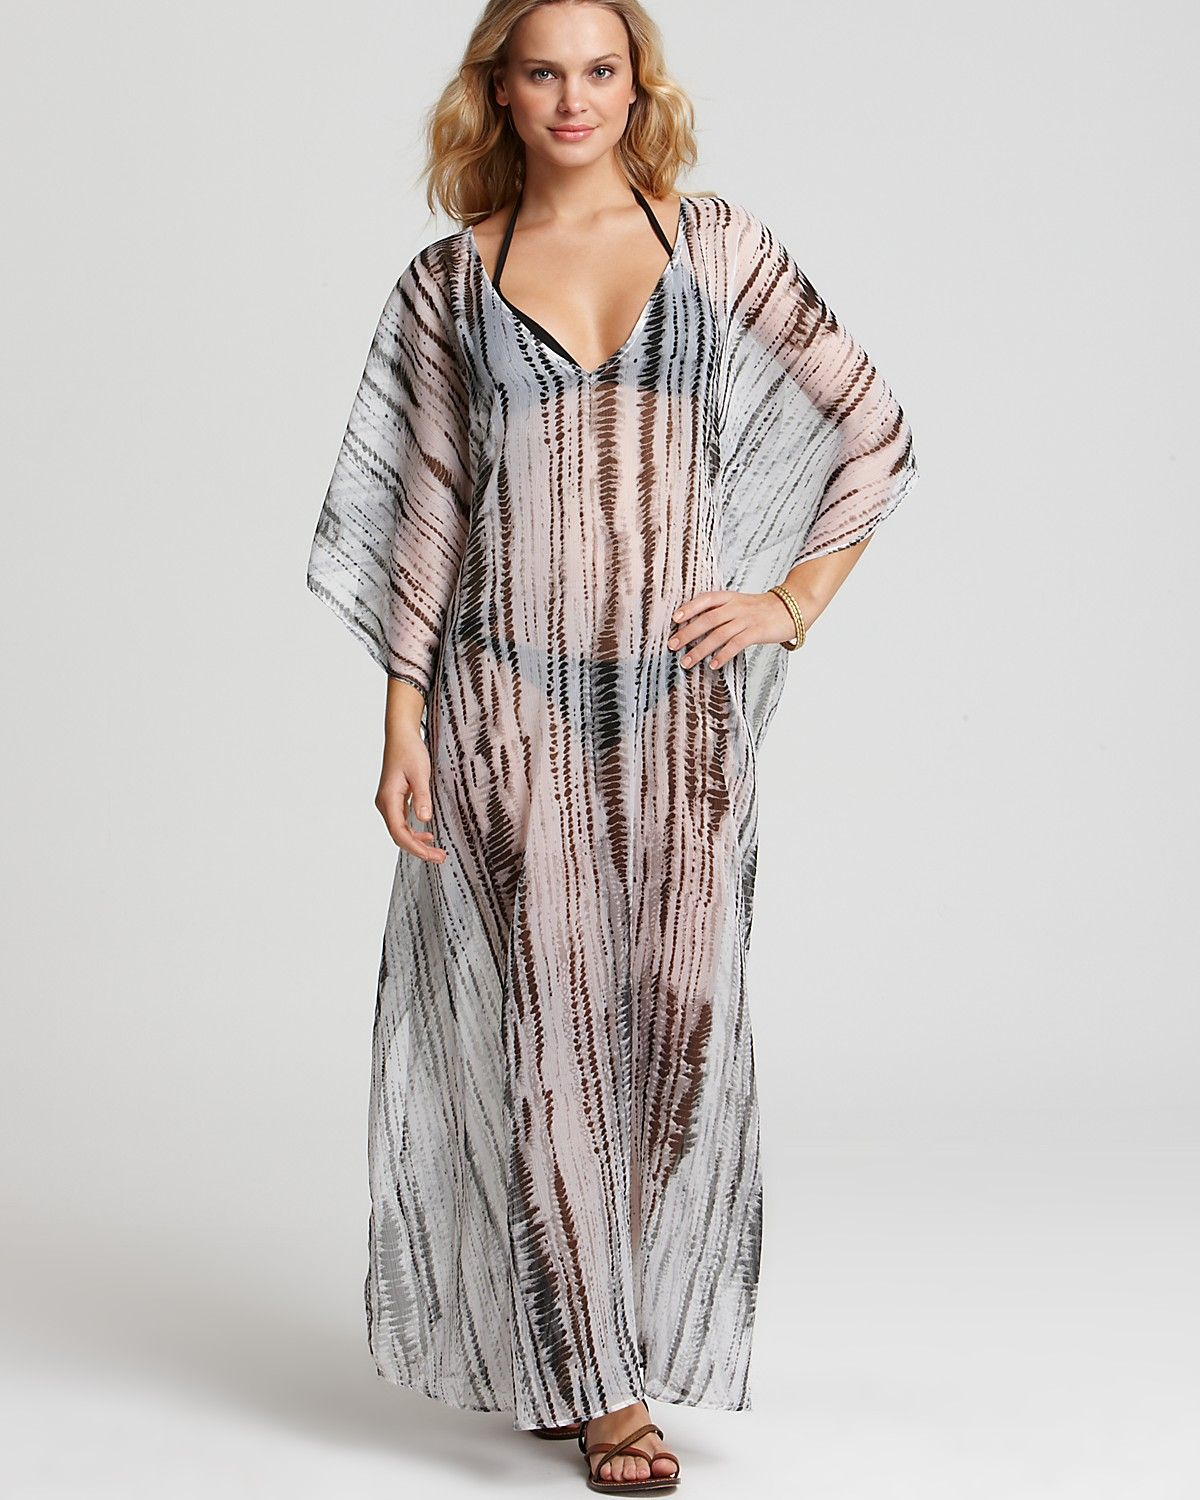 3622c37b43 If your swimsuit is solid black, try this black and white long caftan sheer  coverup from Echo Ikat (at Bloomingdales) for a dramatic look.